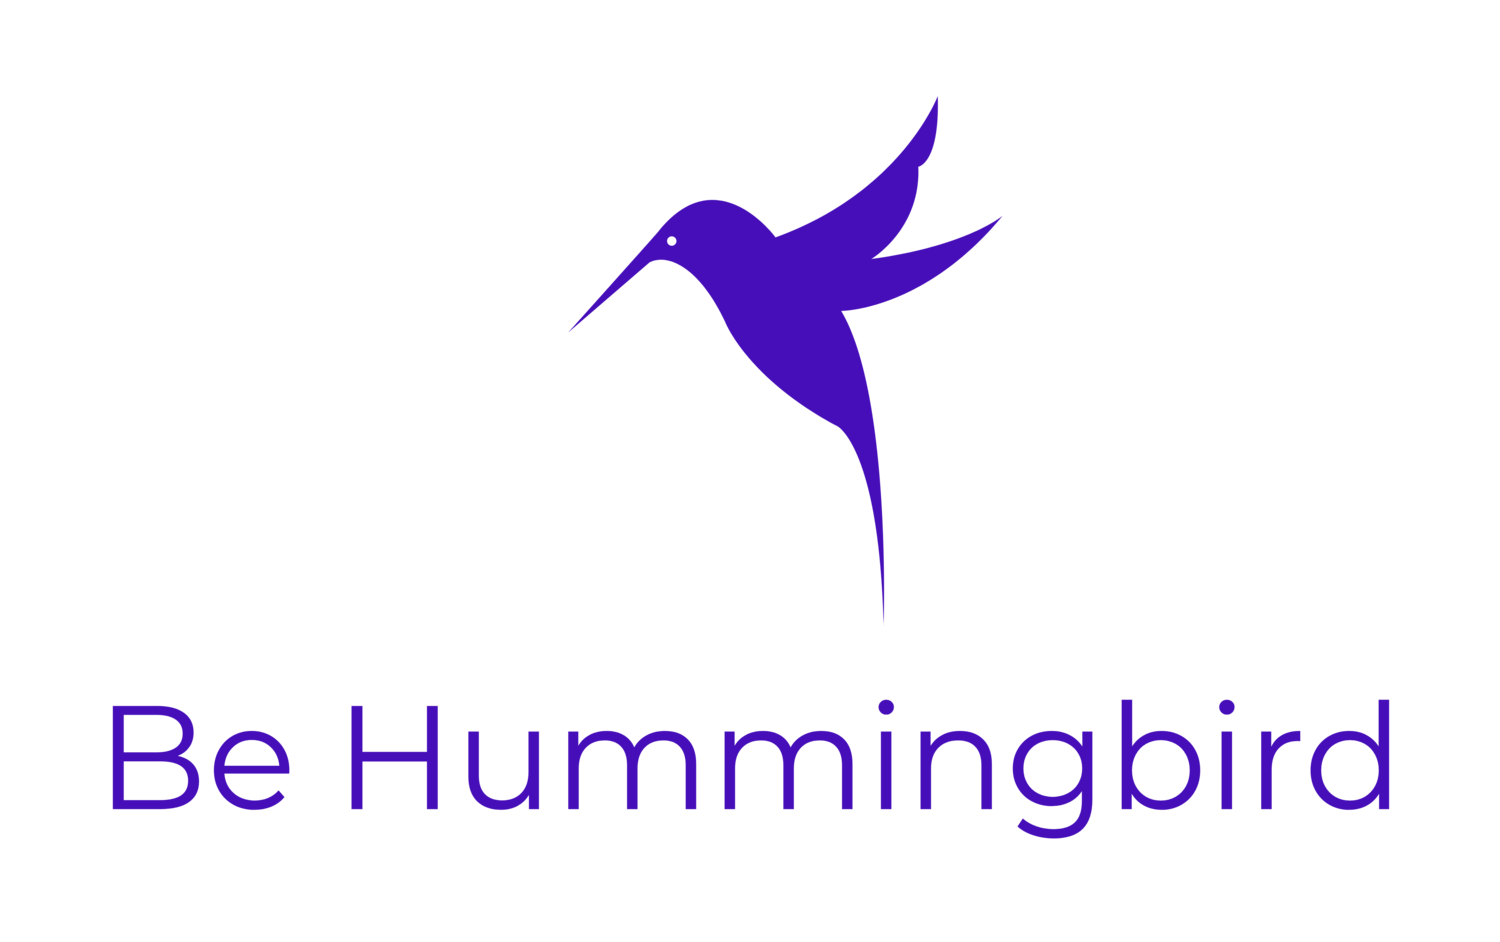 Be Hummingbird